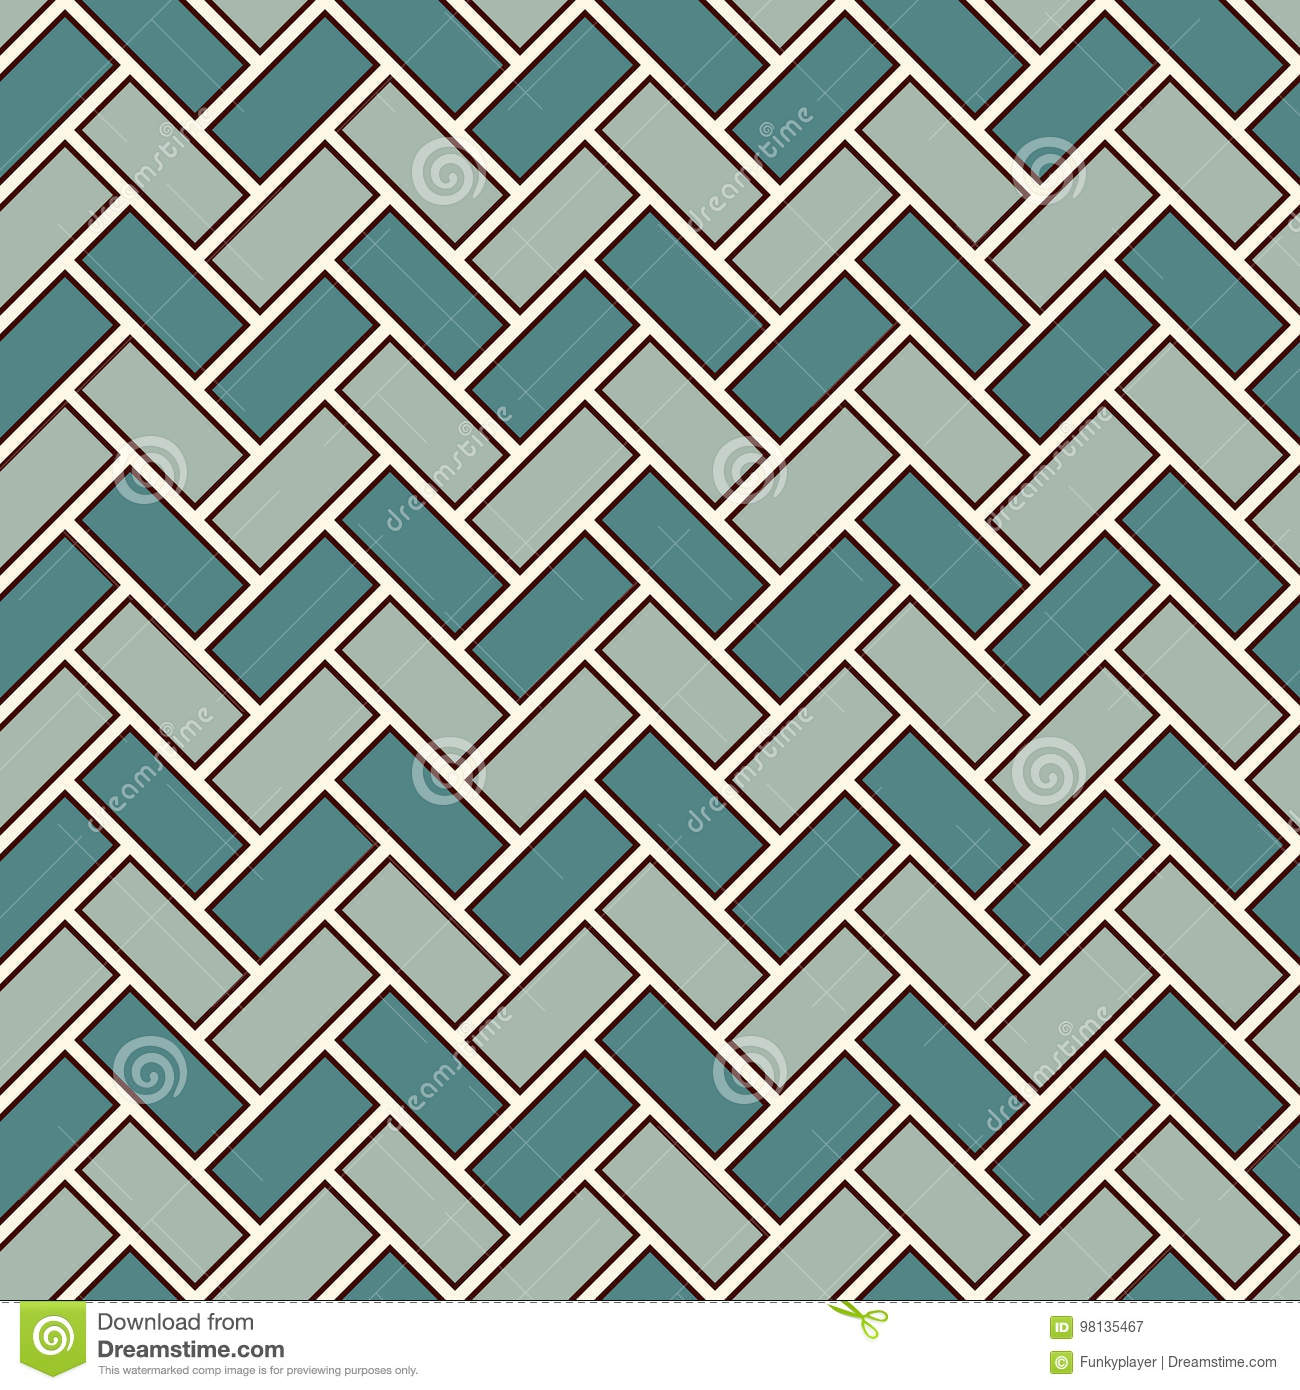 Herringbone wallpaper. Parquet background. Seamless pattern with repeated rectangular tiles. Classic geometric ornament